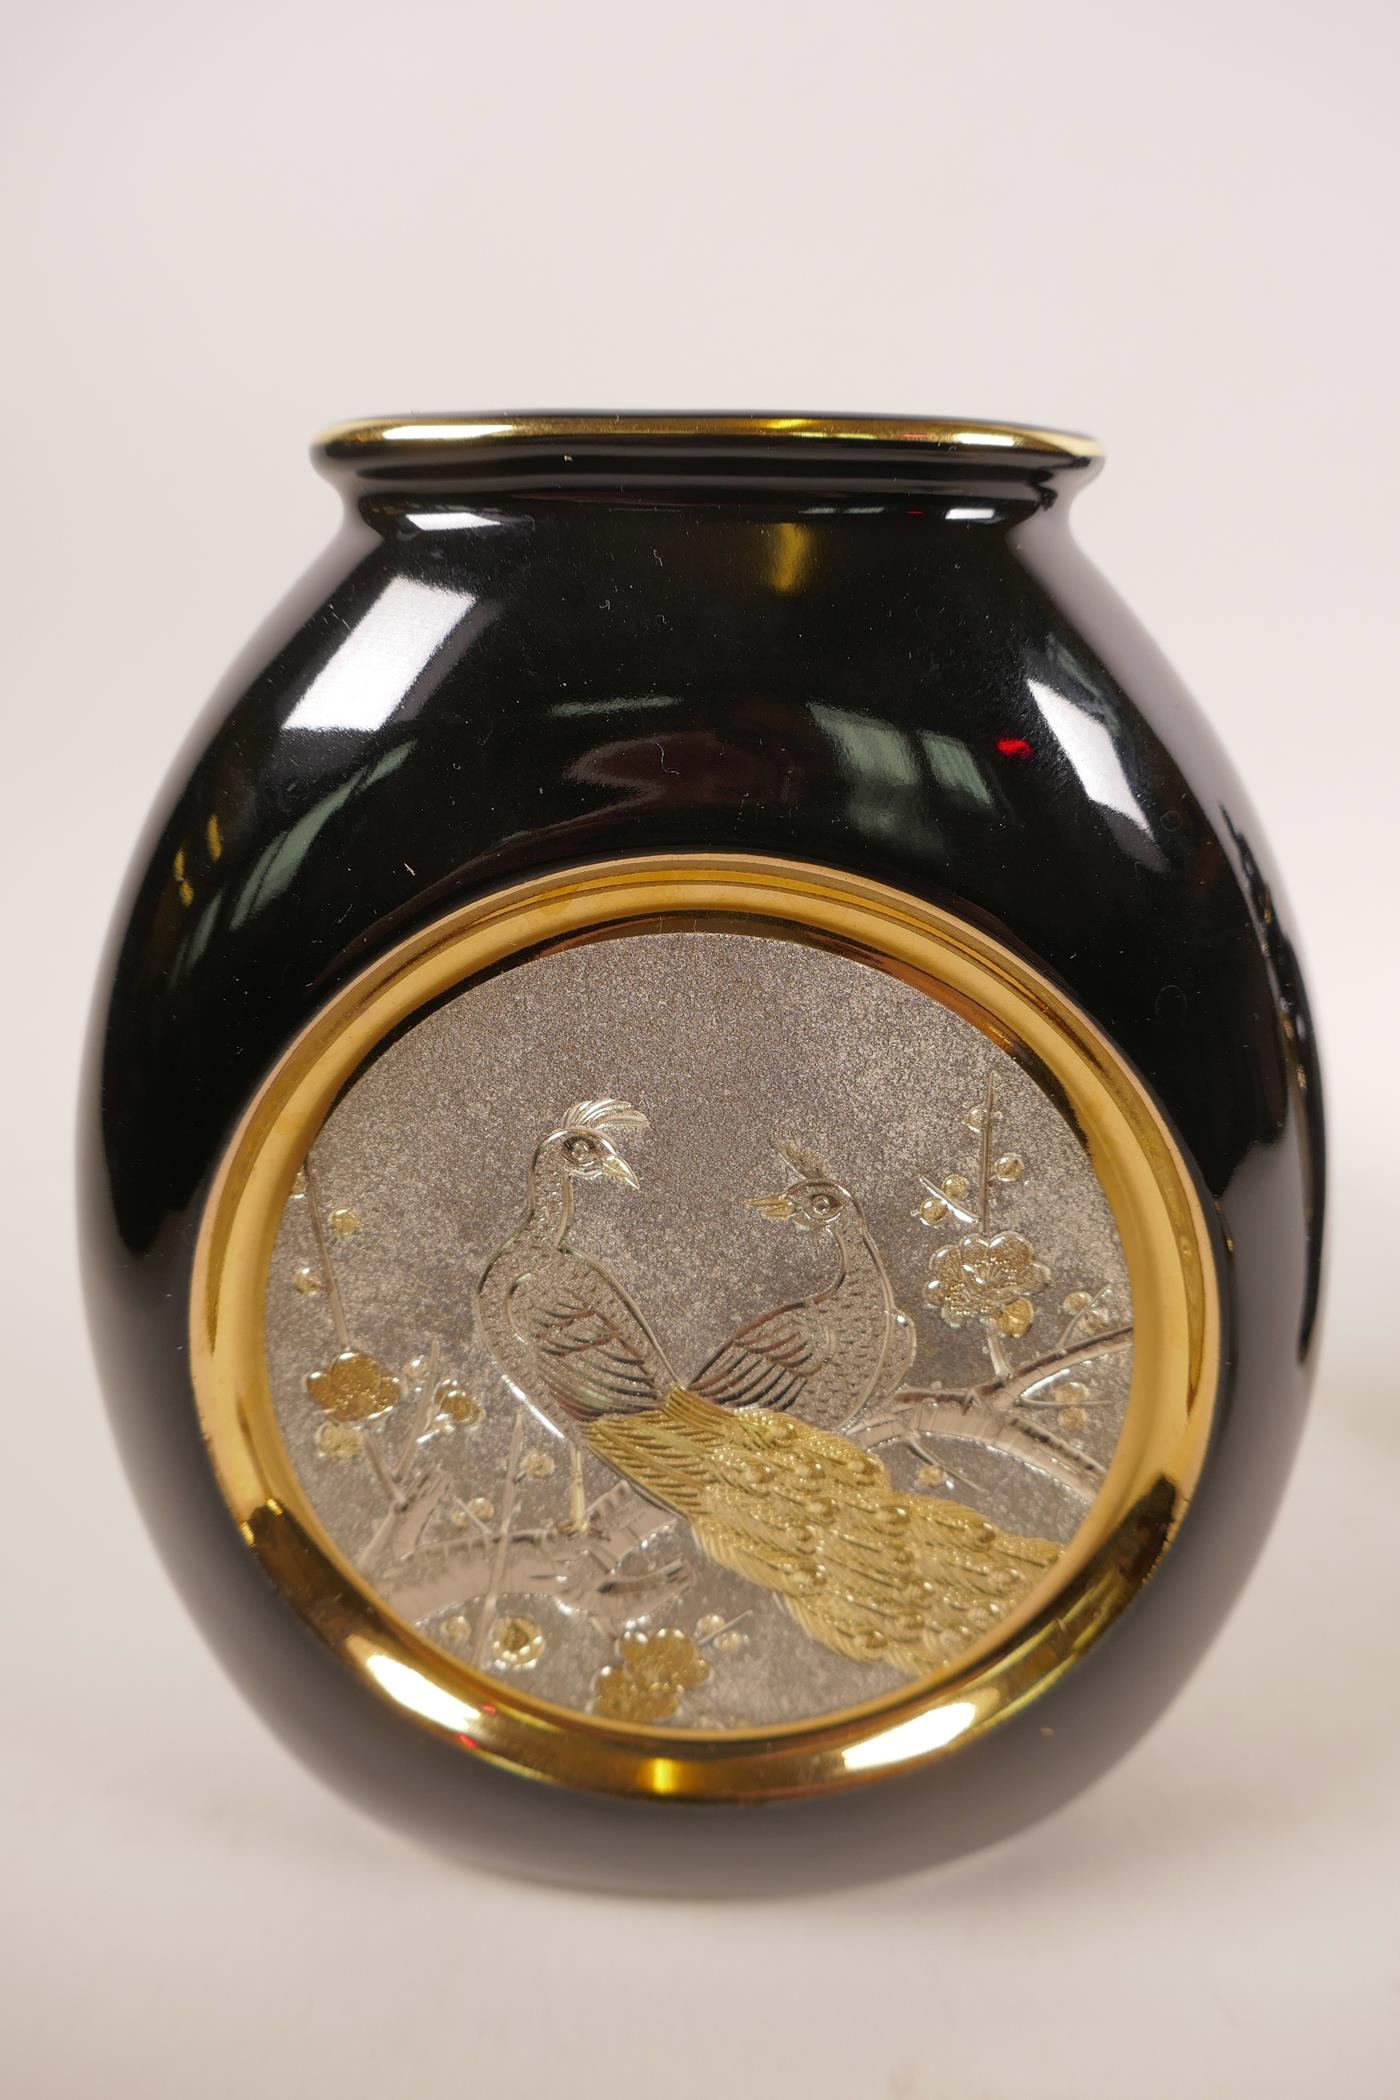 Lot 17 - Three items of Chokin Japanese porcelain, all three decorated with Japanese cloisonné in gold and